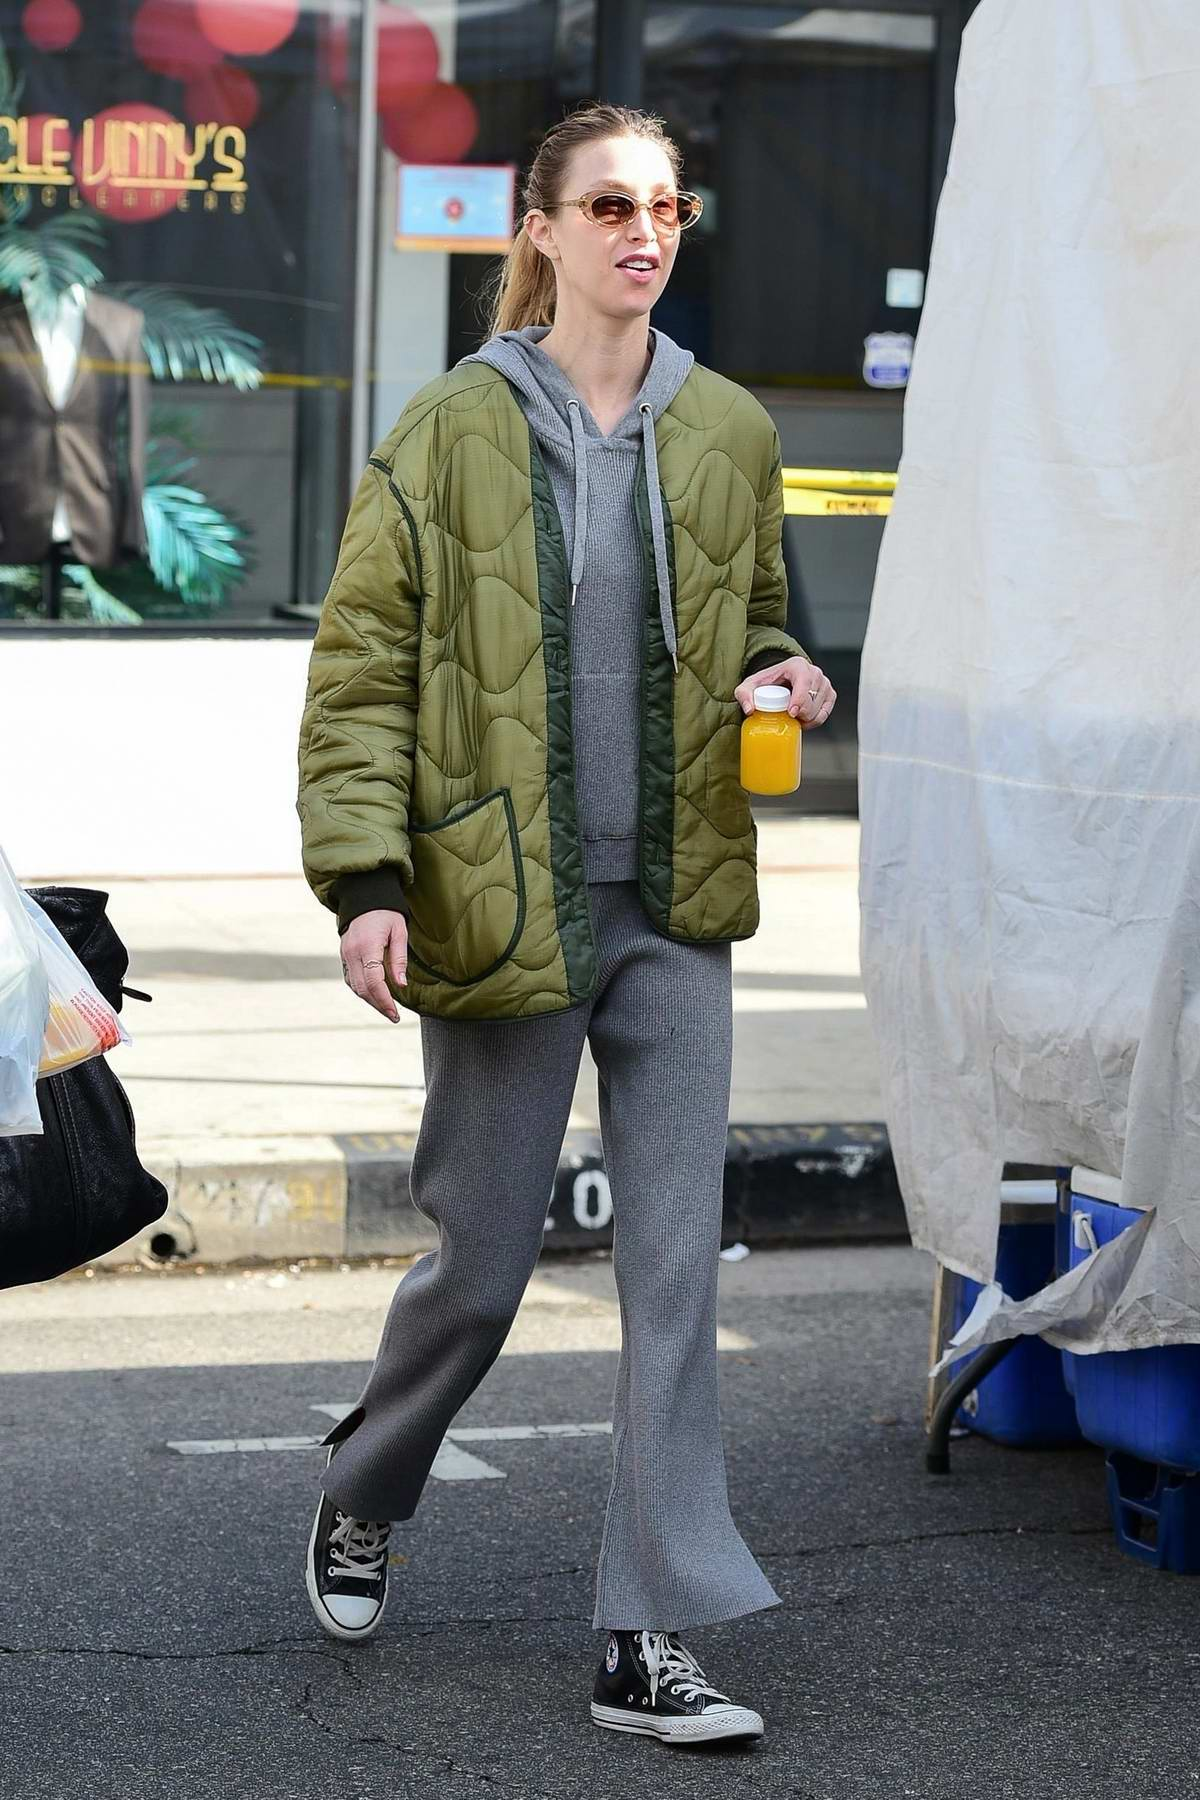 Whitney Port sports matching grey sweats and a green jacket while out at the Farmers Market in Studio City, California